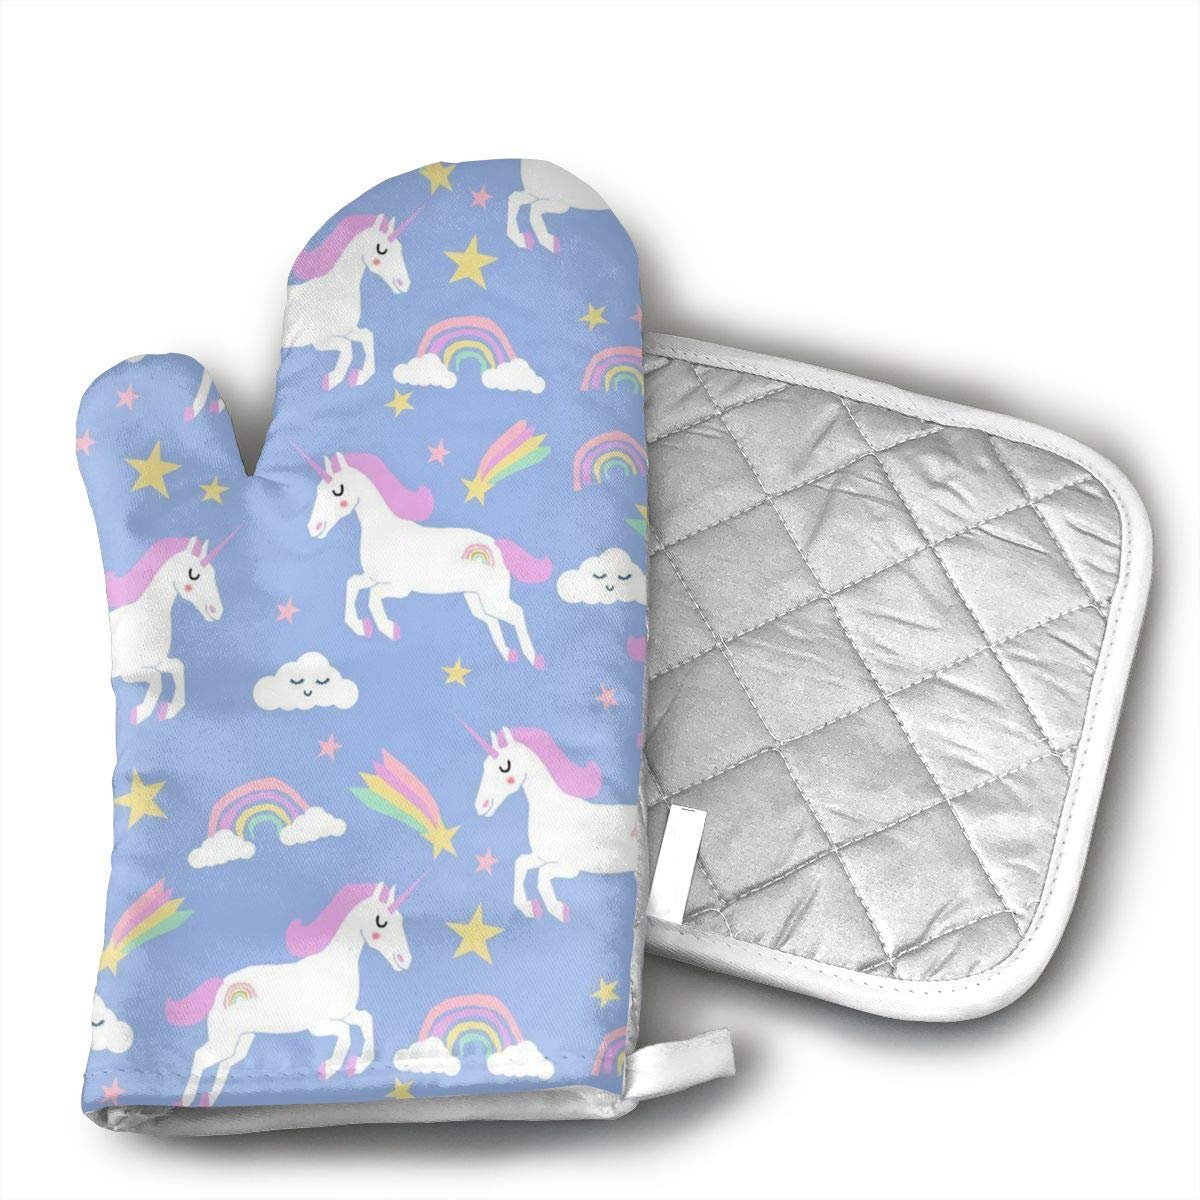 Teuwia Rainbow Clouds Stars Cute Girls Unicorn Oven Mitts and Pot Holders Baking Oven Gloves Hot Pads Set Heat Resistant for Finger Hand Wrist Protection